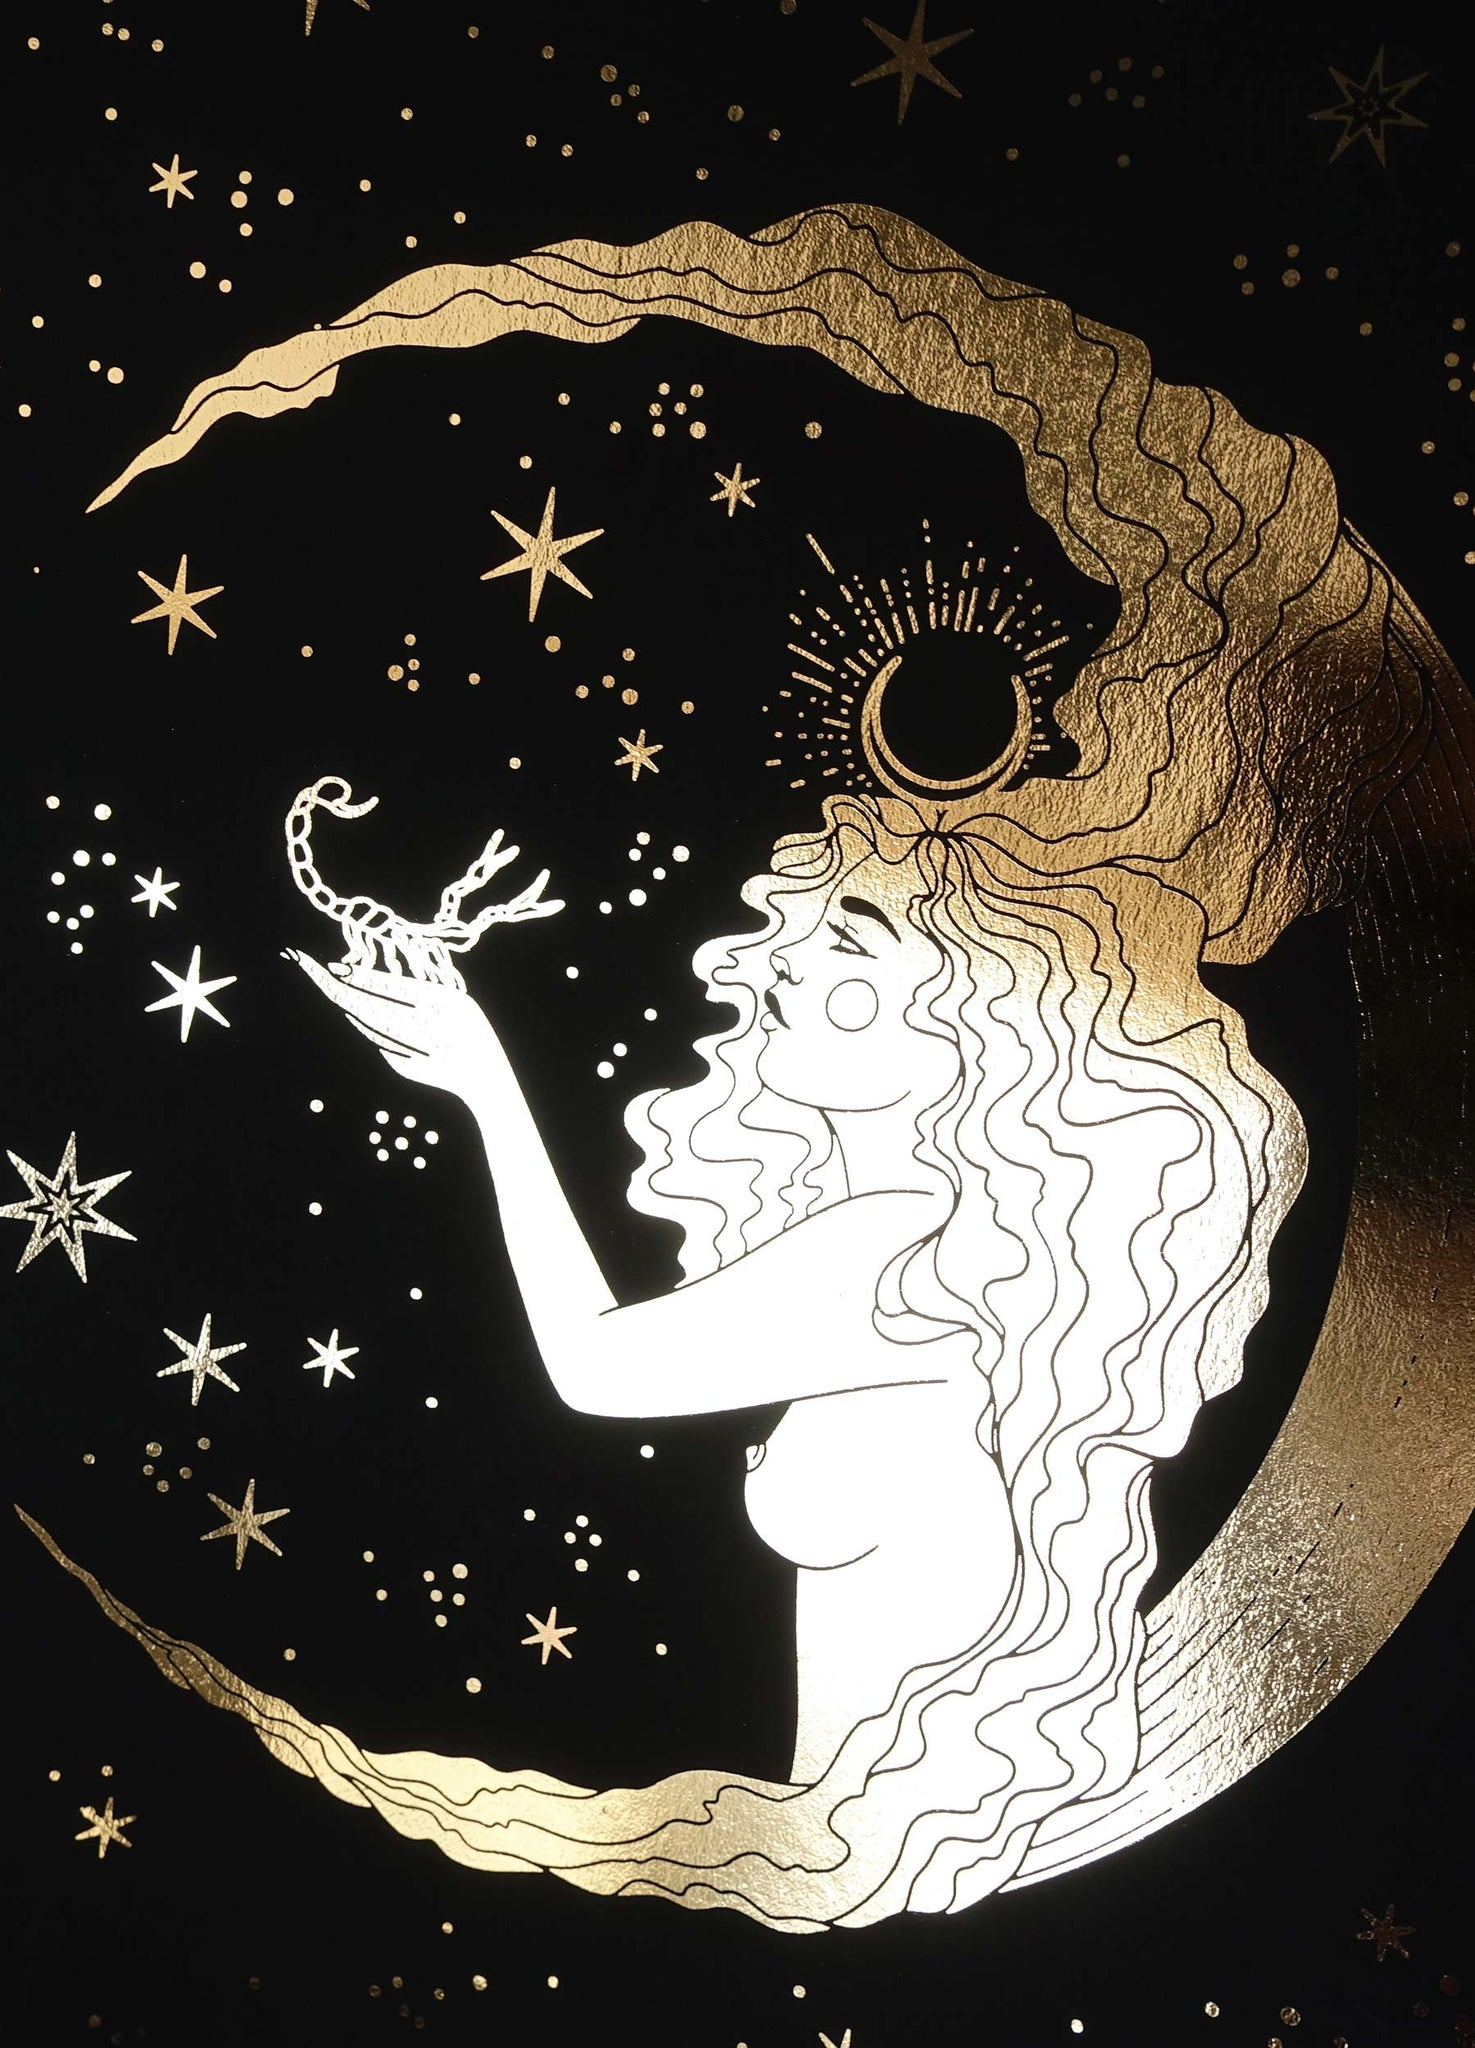 Scorpio Moon Goddess gold foil on black paper by Cocorrina & Co Shop